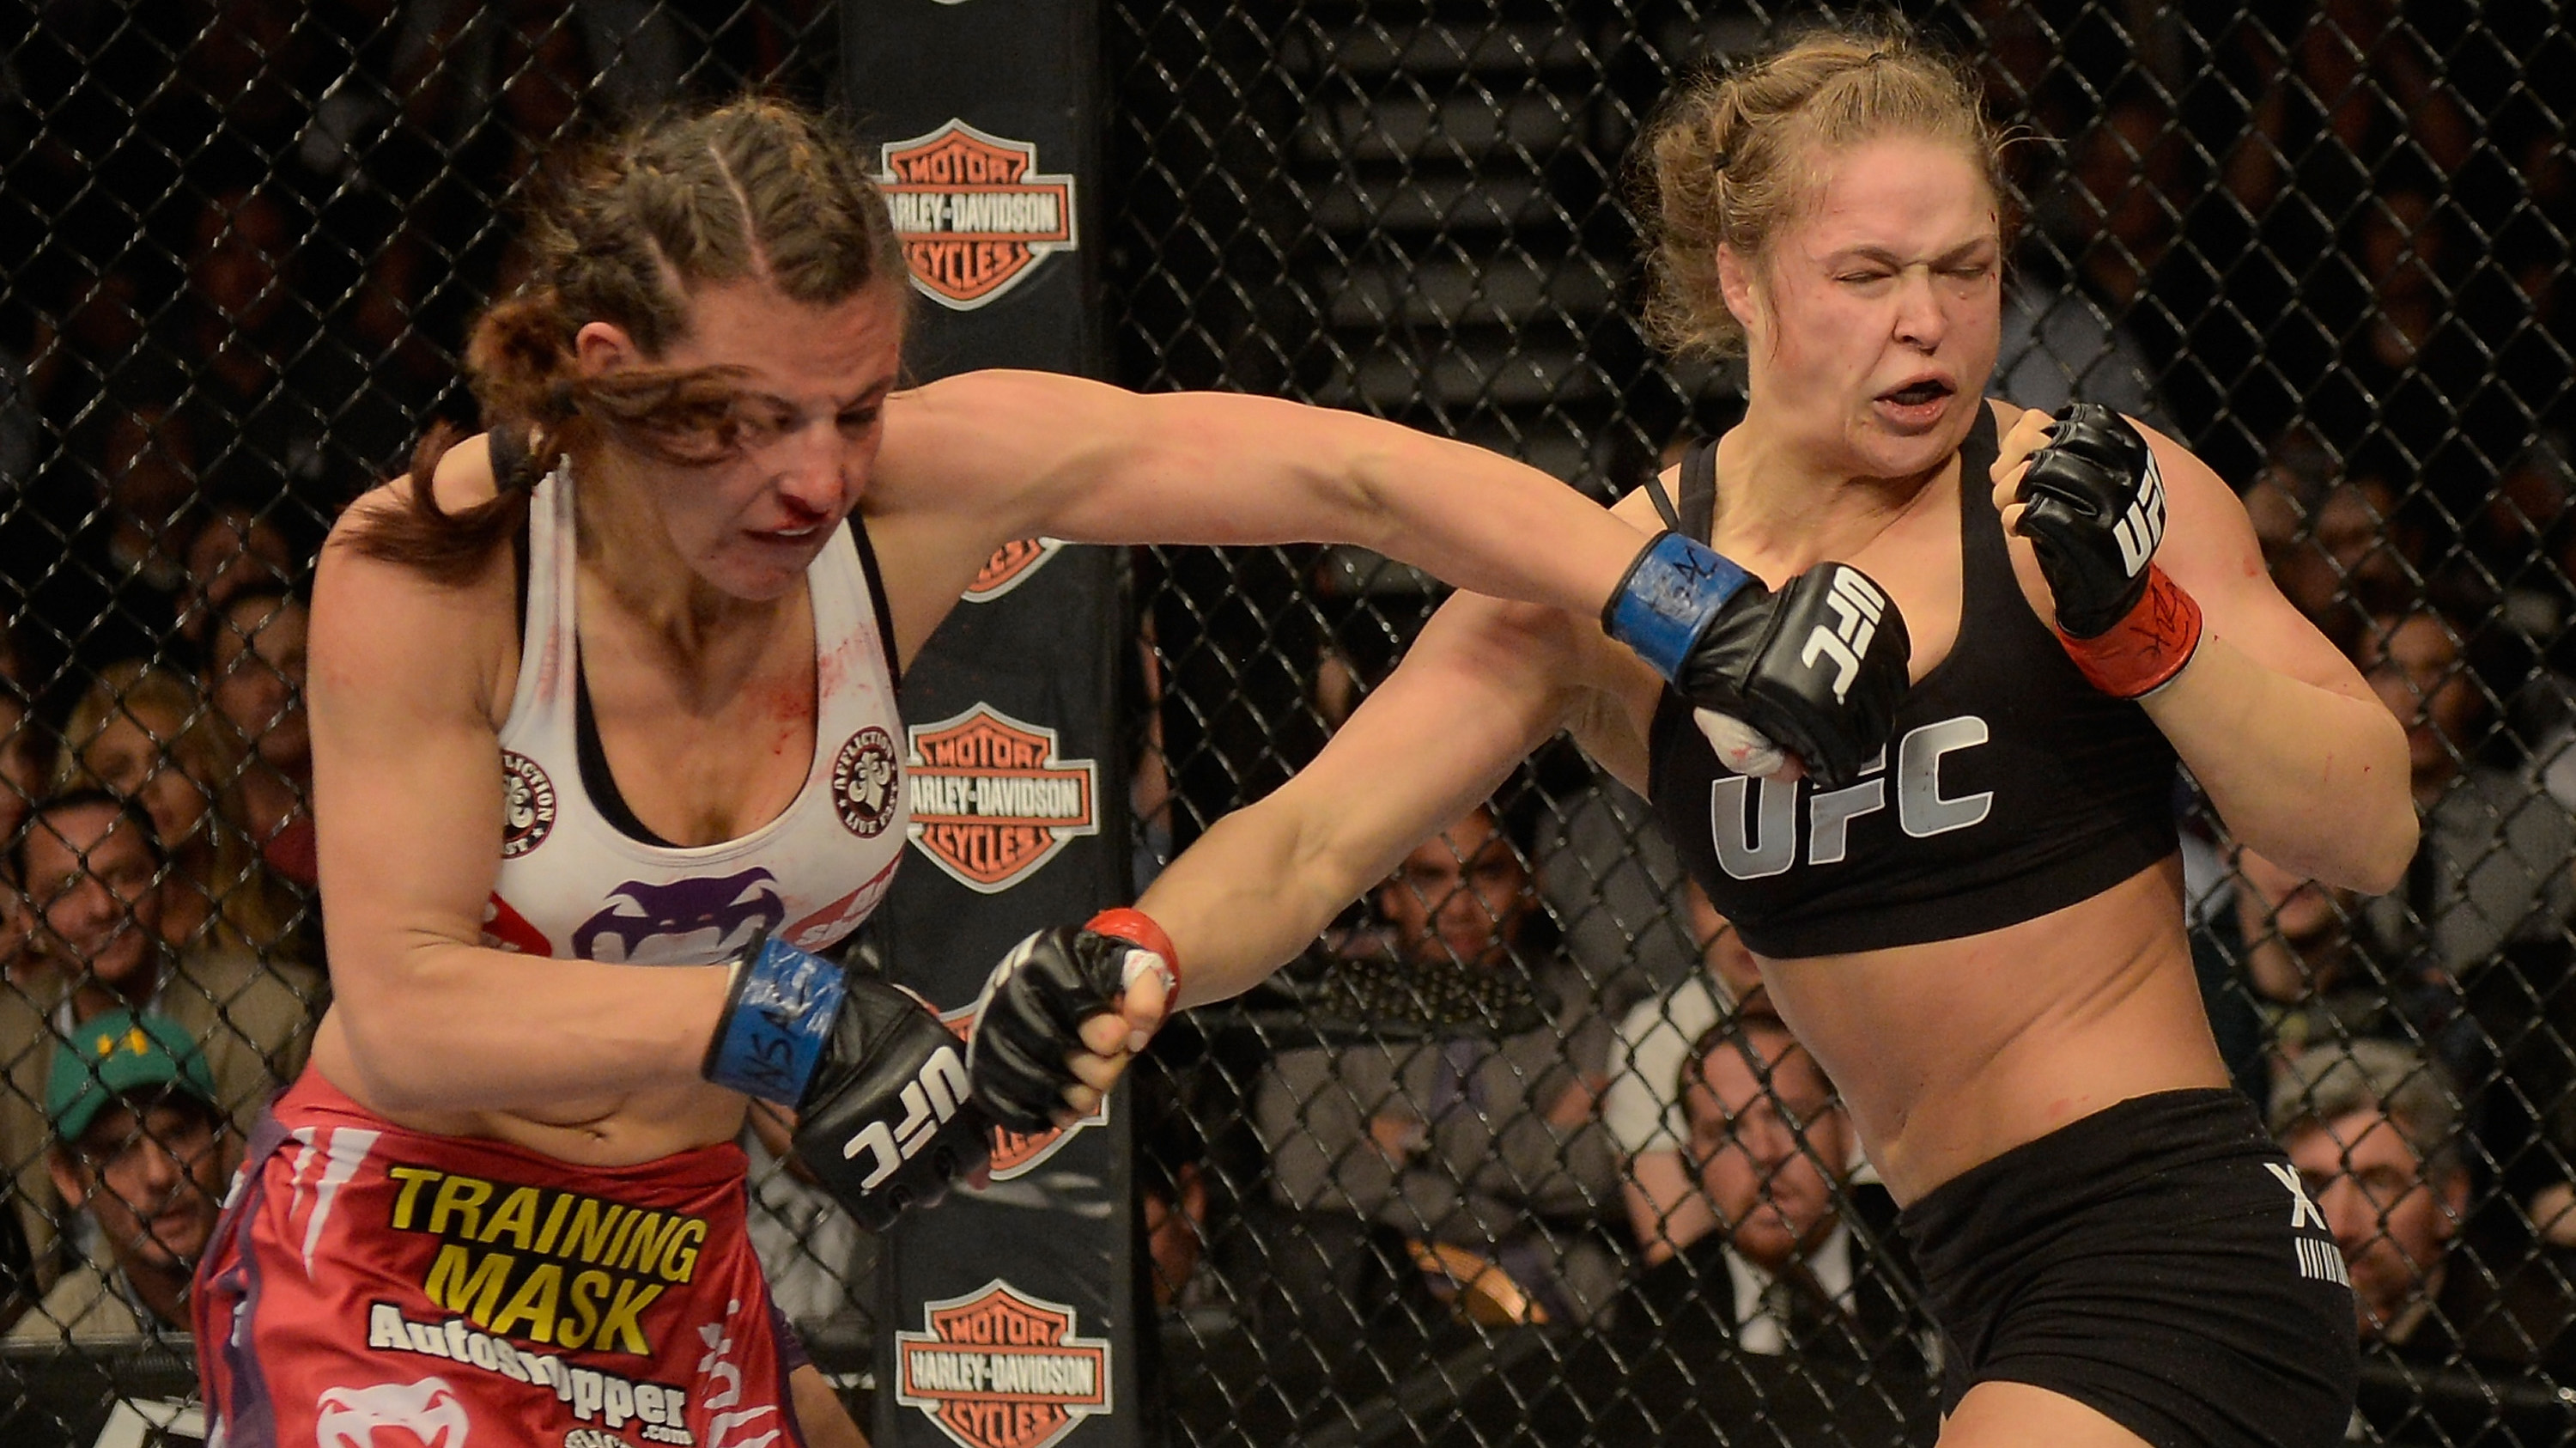 Tate in action in her second fight vs Rousey (Photo by Donald Miralle/Zuffa LLC/Zuffa LLC via Getty Images)